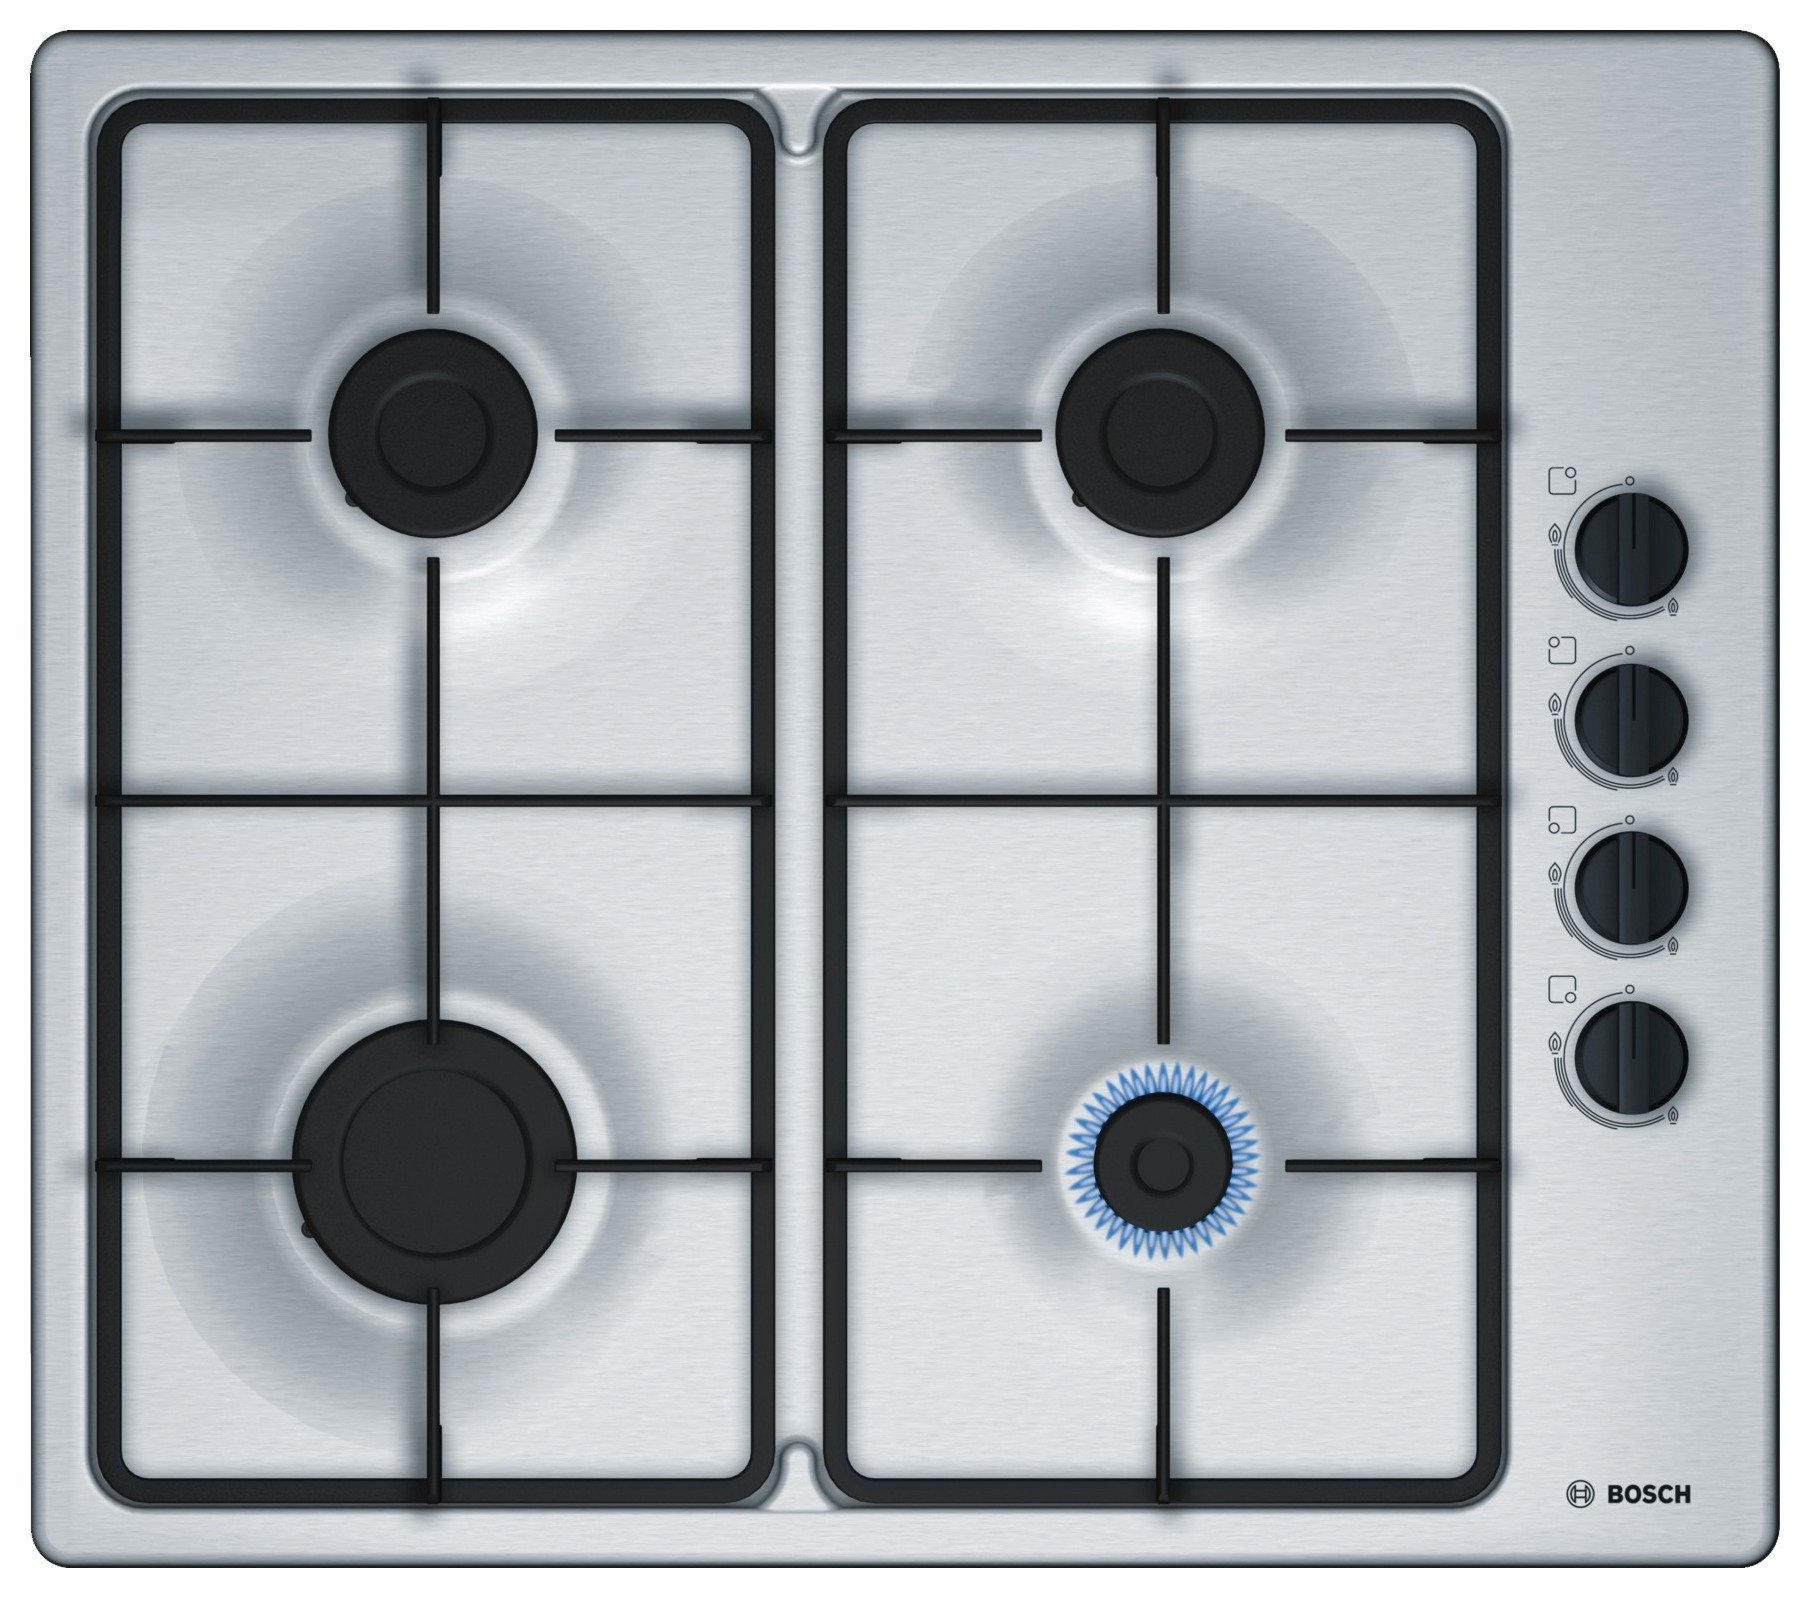 Image of Bosch - PBP6B5B60 - Gas Hob - Stainless Steel